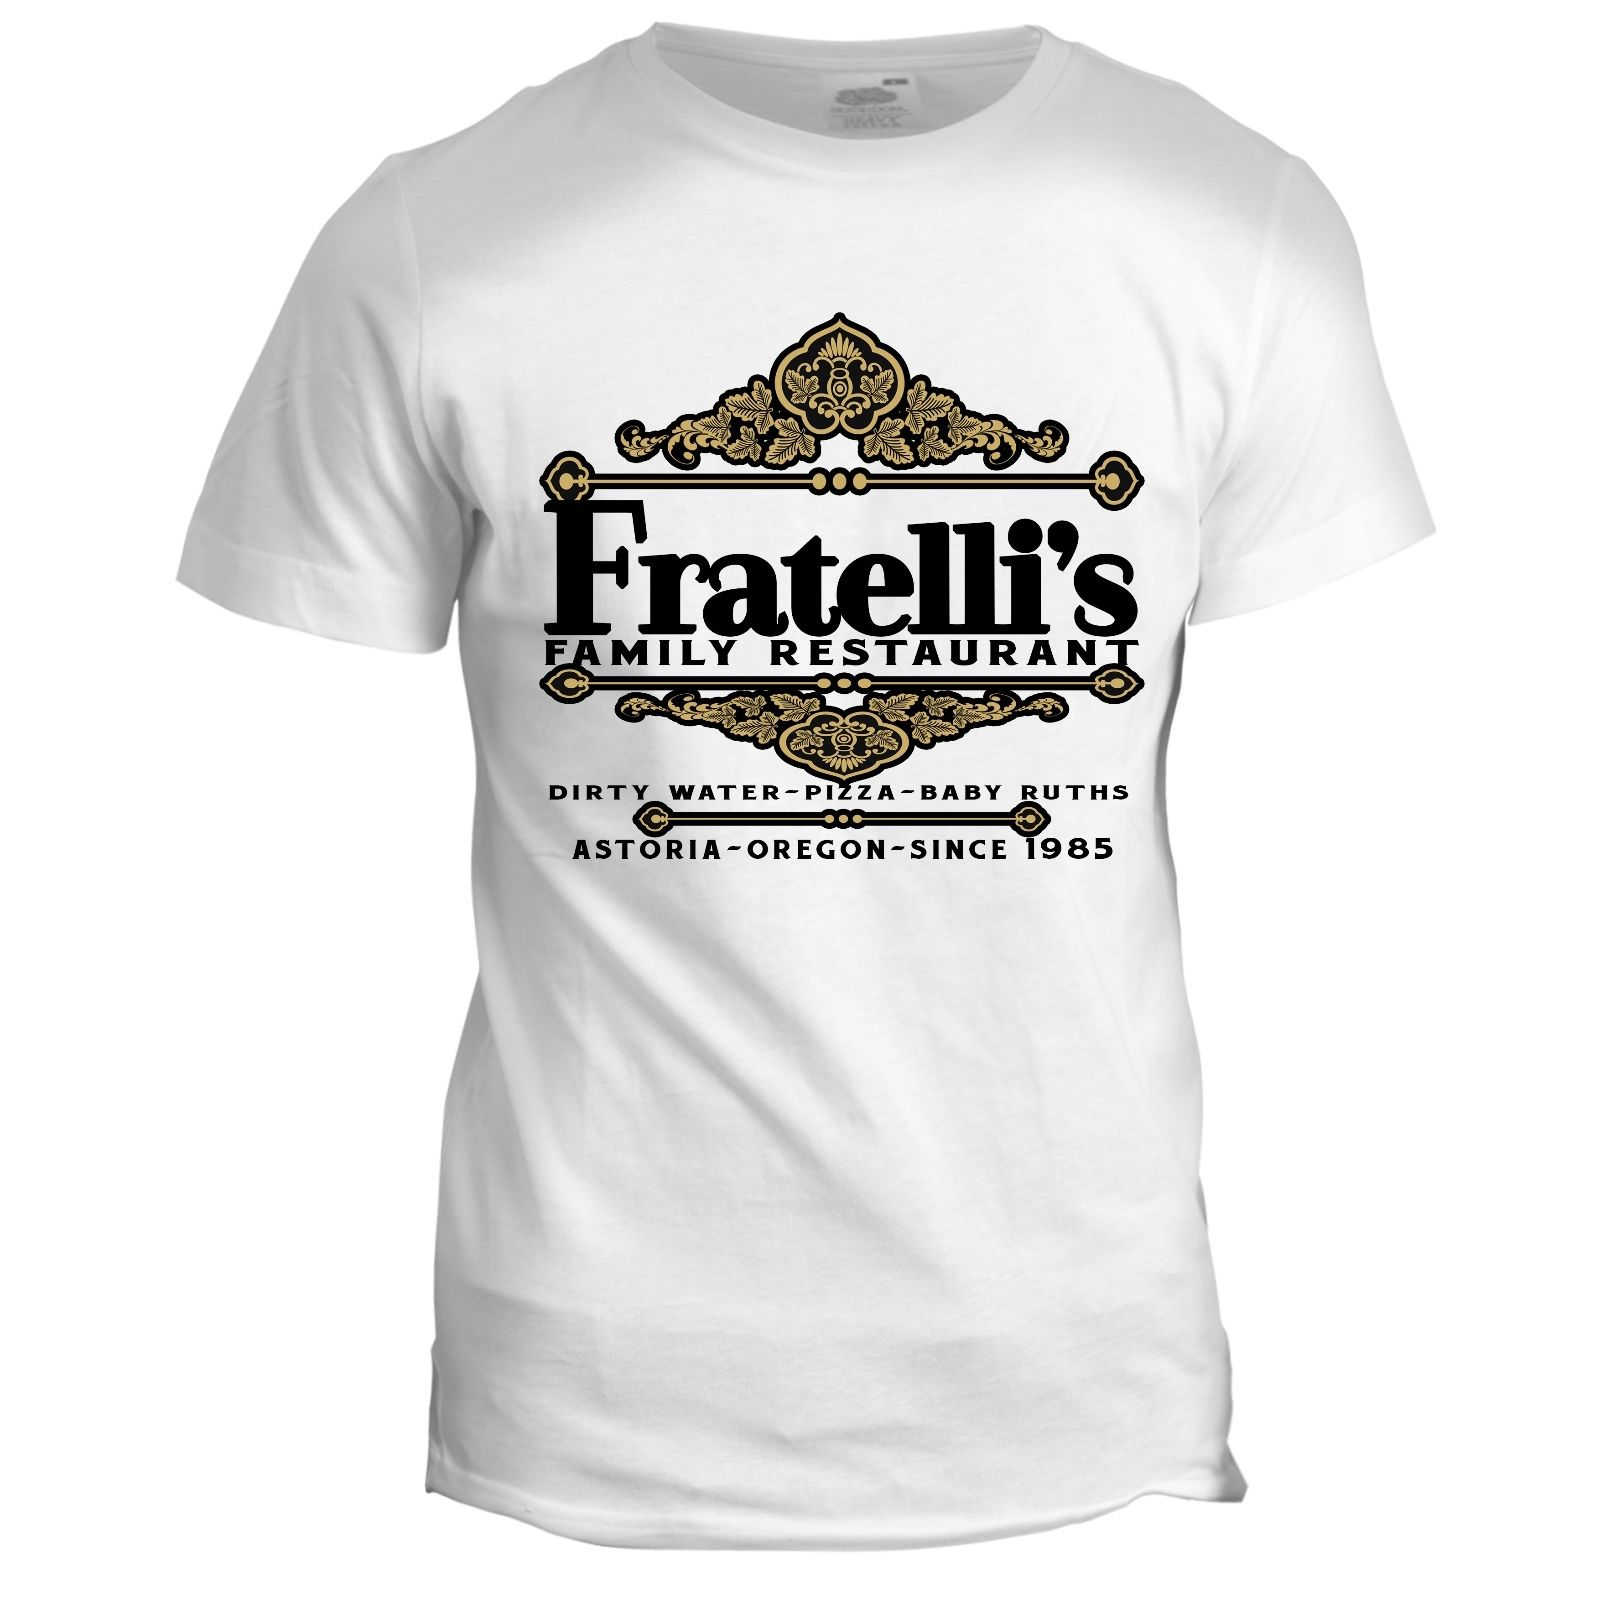 Fratelli's Restaurant Inspired The Goonies 80s Retro Italian Movie Film Printed T Shirt Men Cotton T-Shirt New Style image